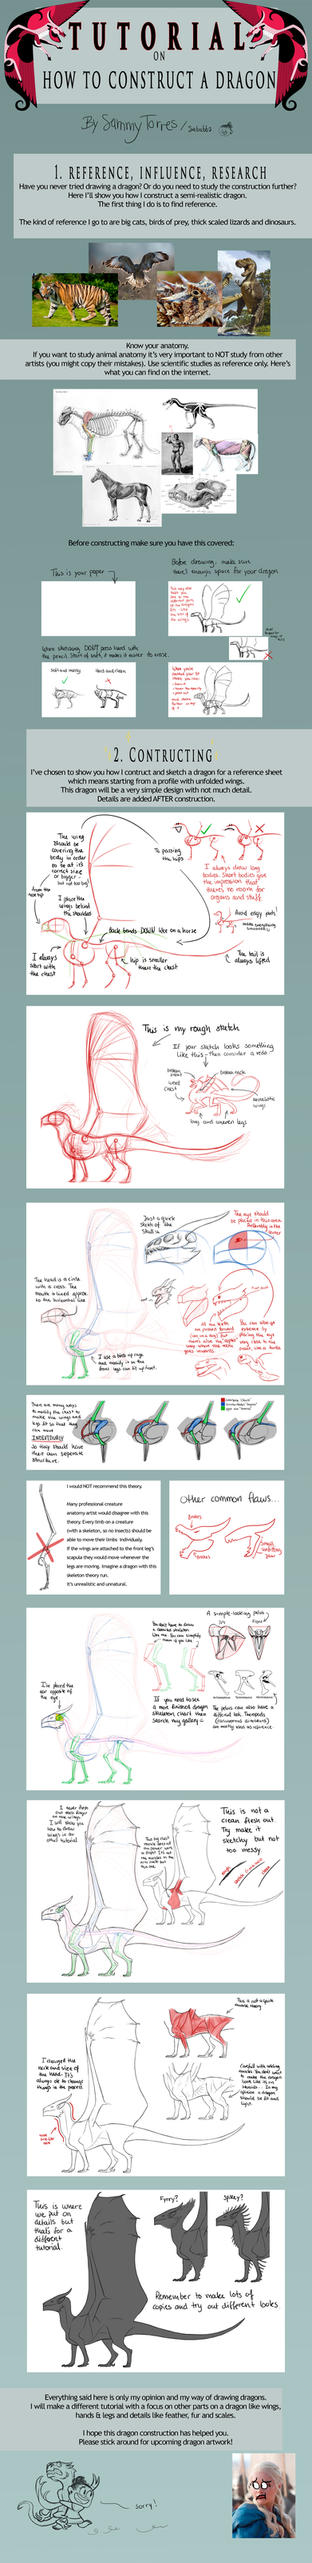 TUTORIAL: How to Construct a Dragon by SammyTorres